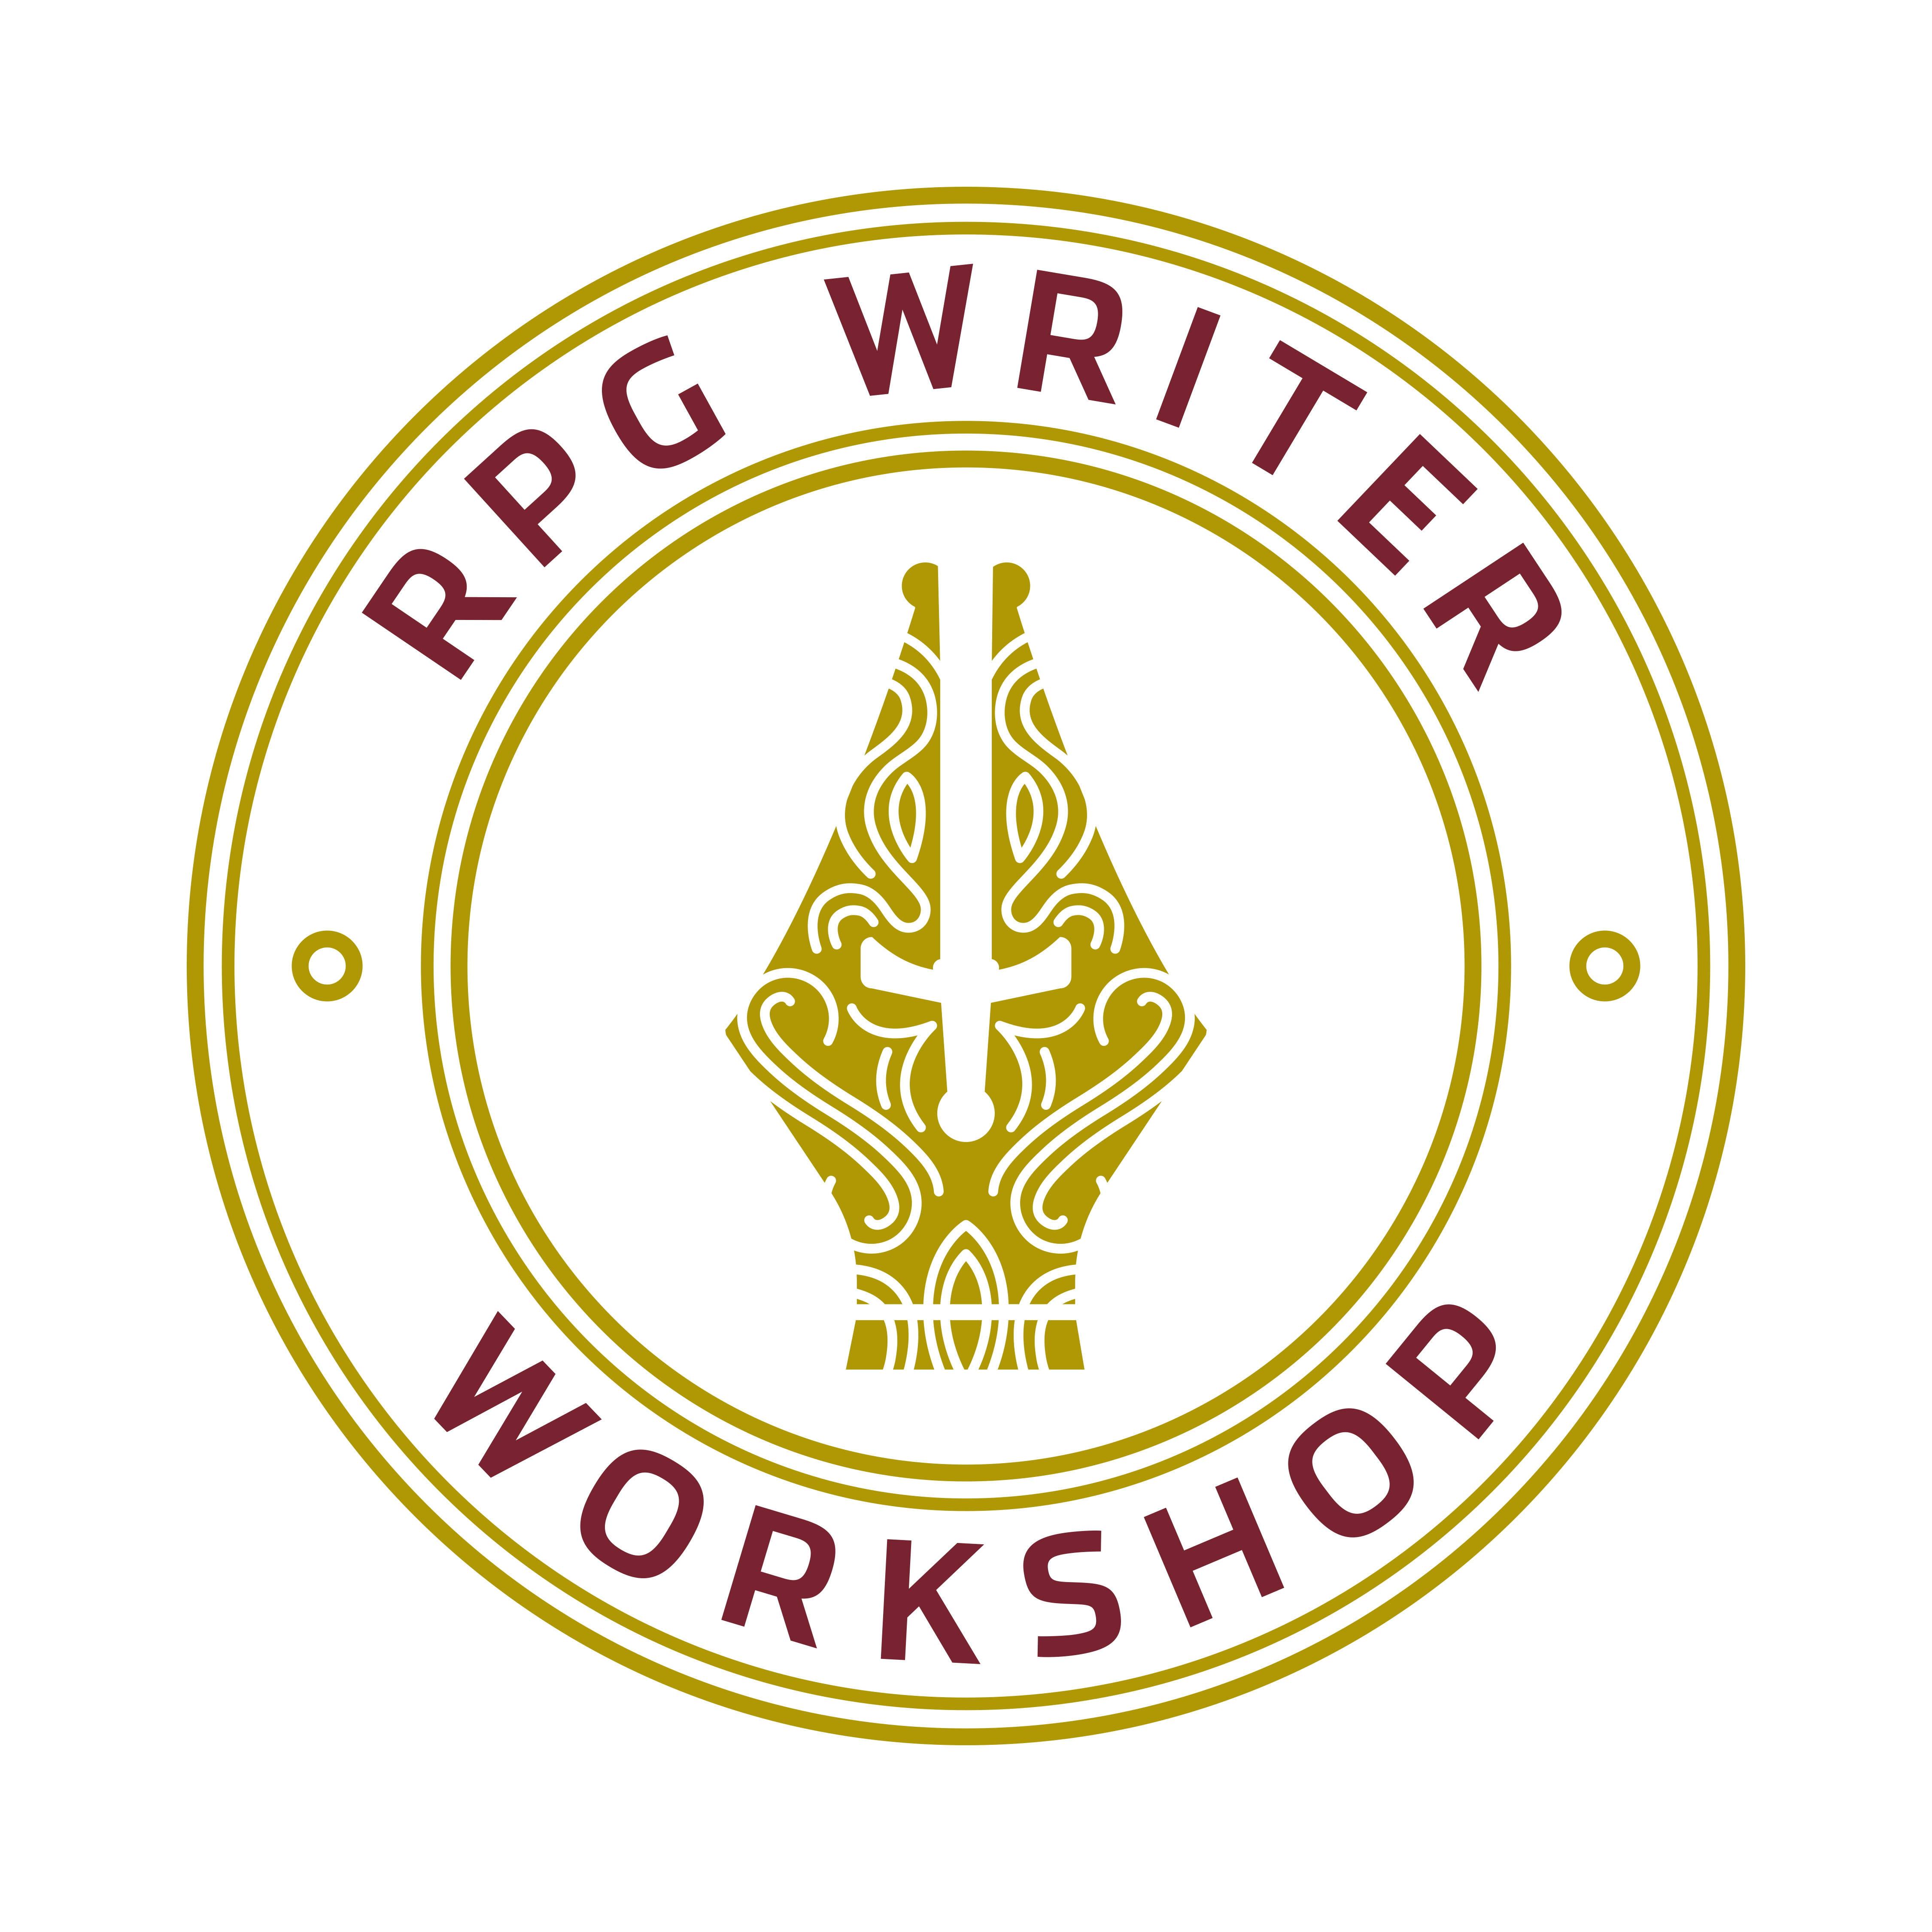 Rpg writing workshop logo